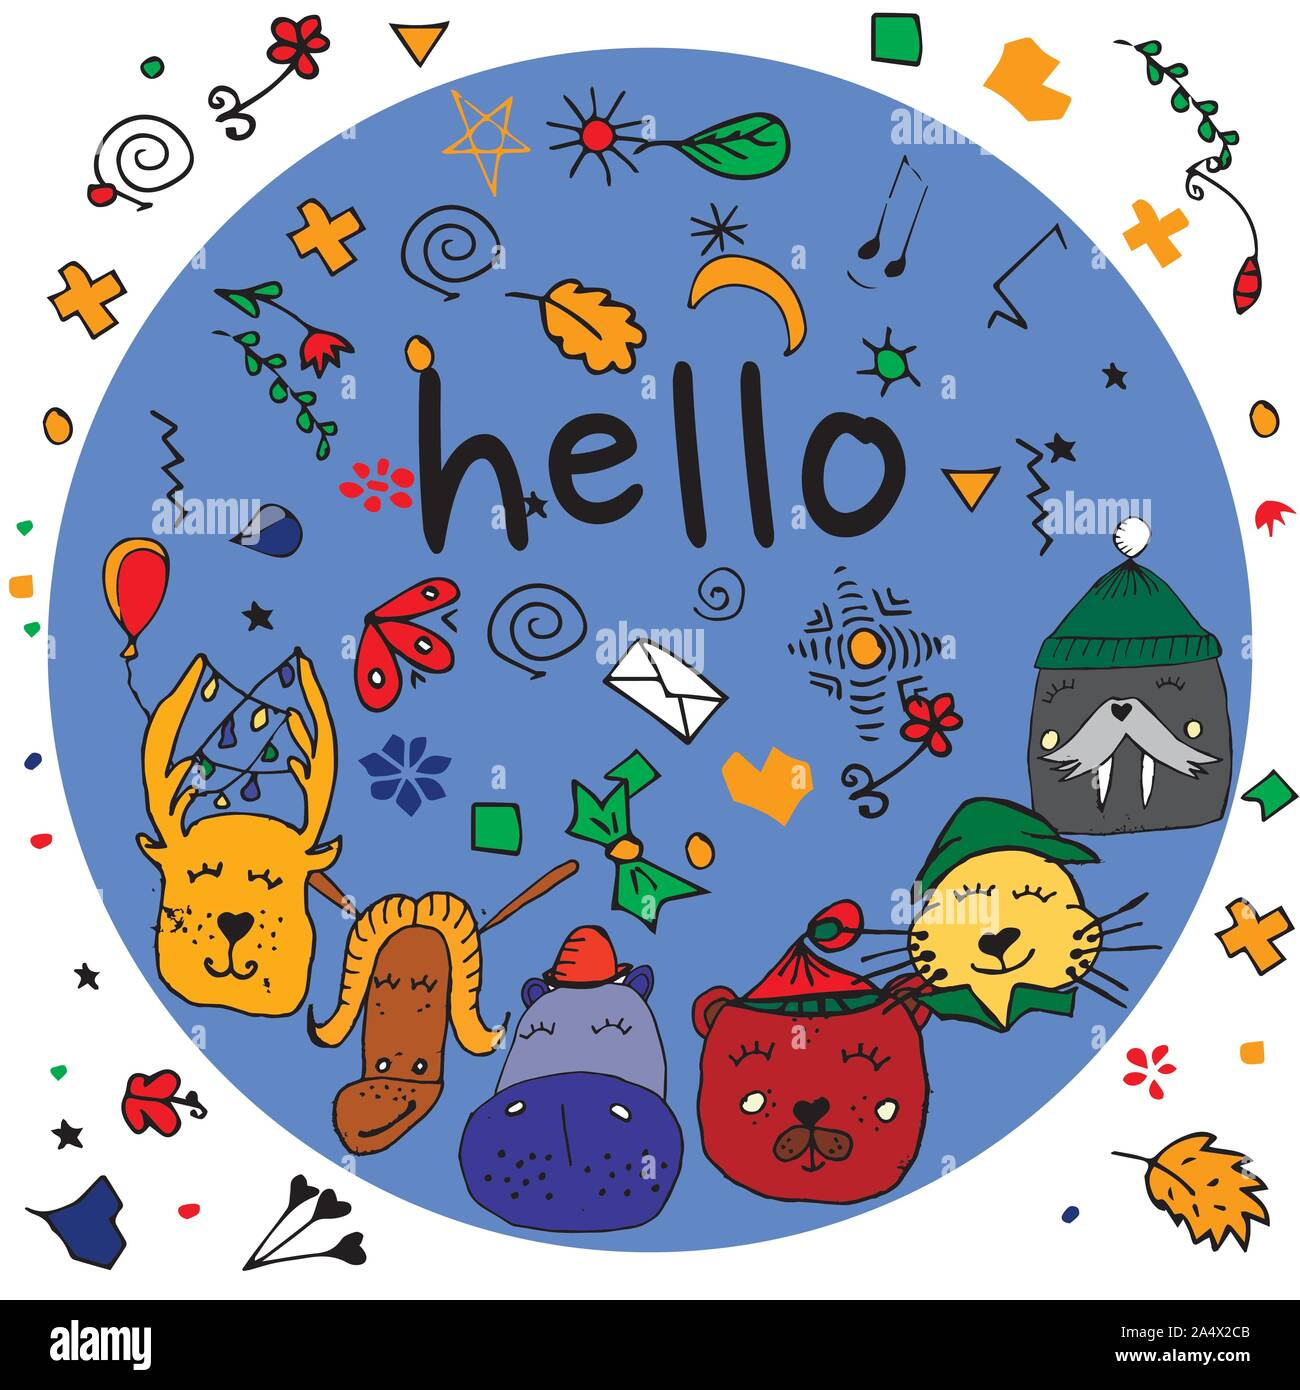 Colorful animal friends collection including walrus, hippo,goat,cat,deer,bear.Cute hand drawn doodles.Good for posters, stickers, cards, alphabet and Stock Vector